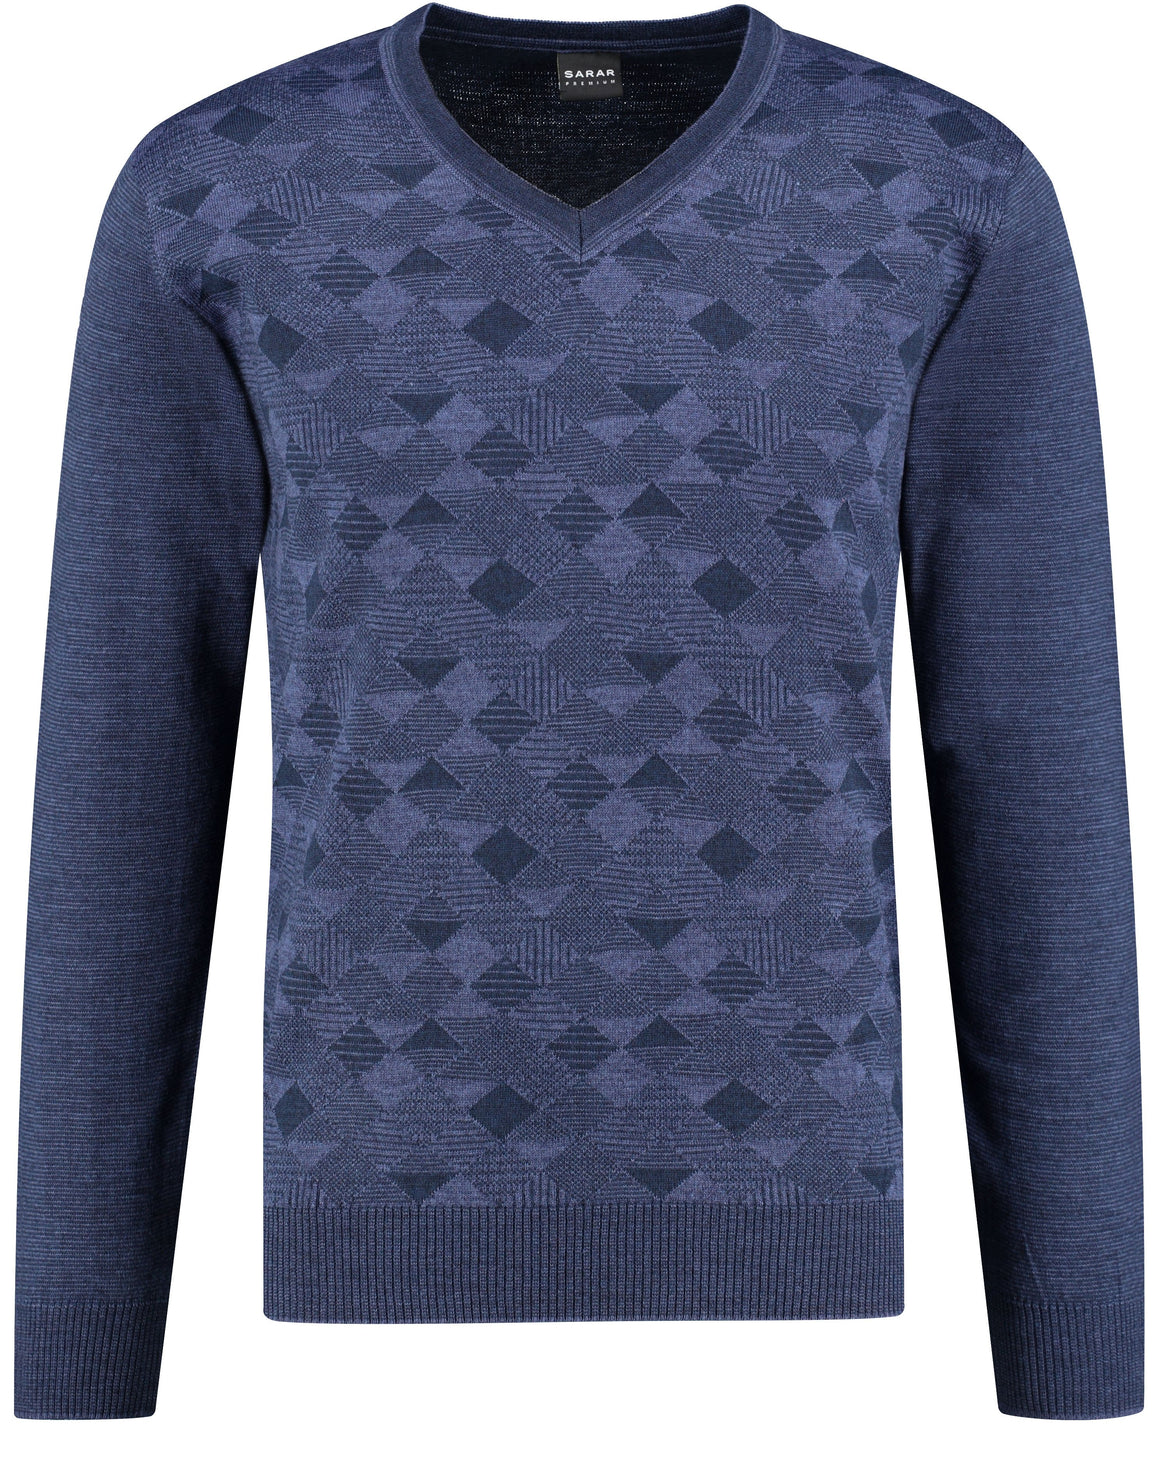 Front perspective of classic fit v-neck blue long sleeve pullover sweater knitwear for men